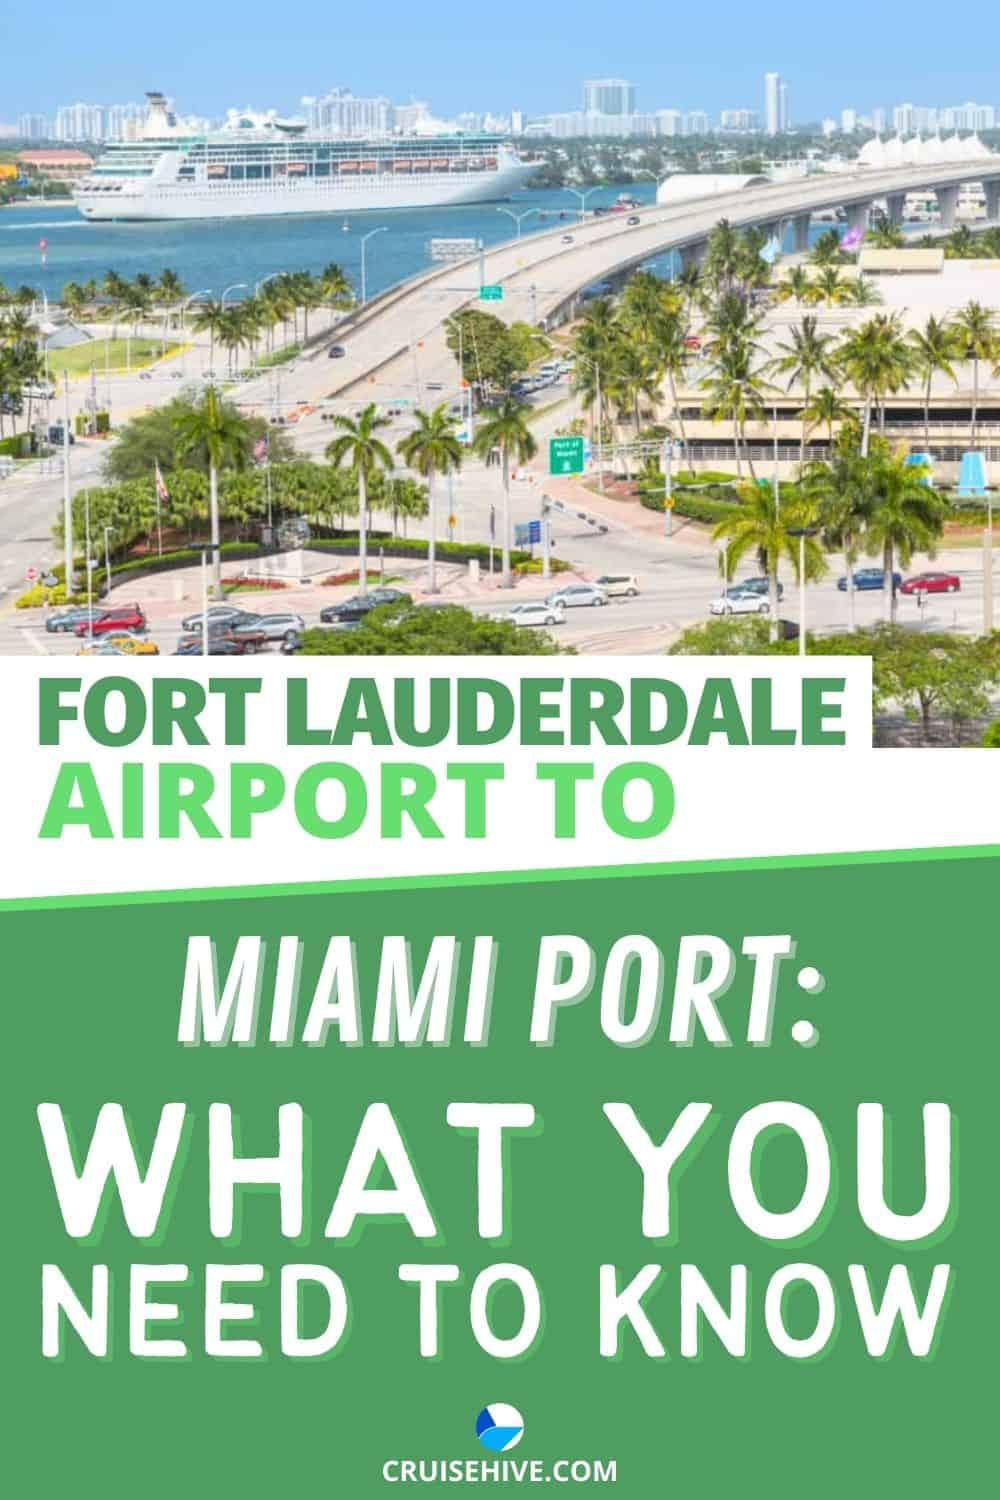 Fort Lauderdale Airport to Miami Port